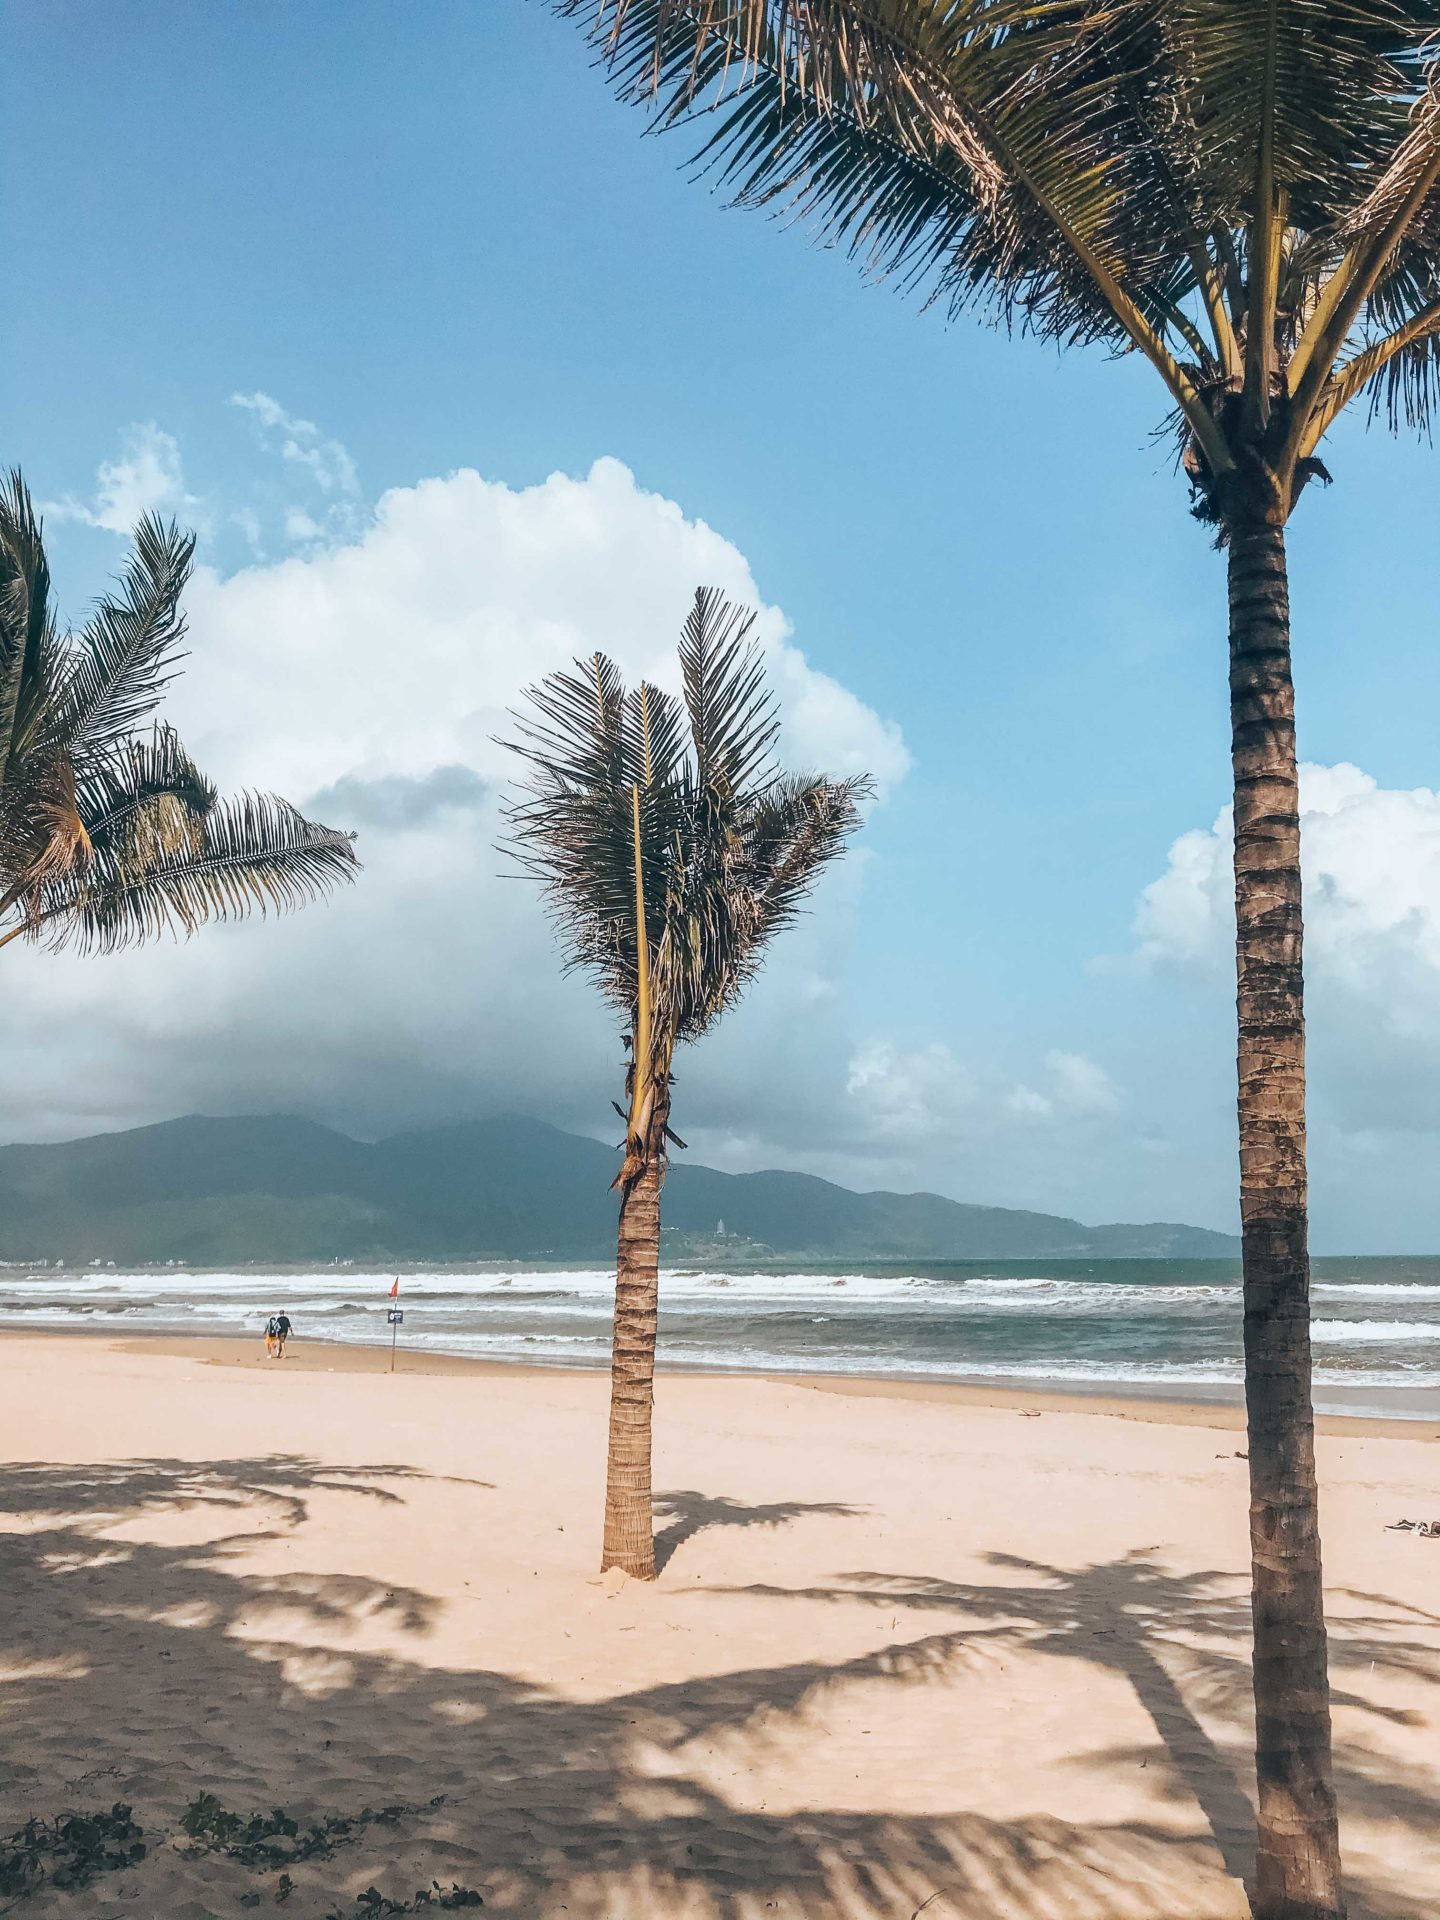 Palm trees on My Khe Beach and views on Lady Buddha, Da Nang